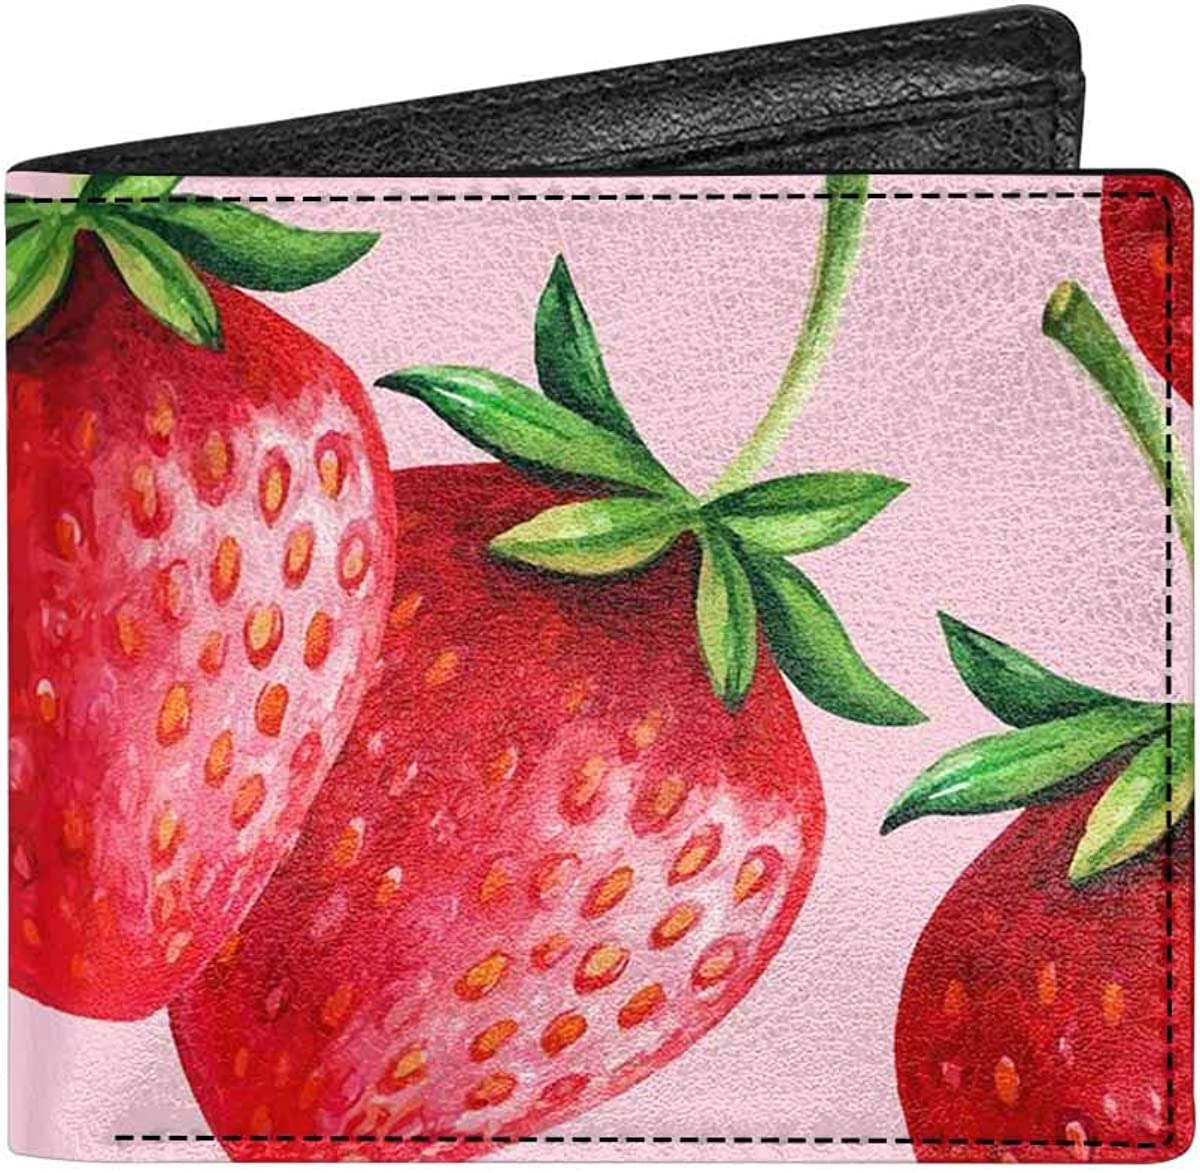 INTERESTPRINT Splatter Pattern Adults Casual PU Leather Credit Card Wallet with Coin Pocket